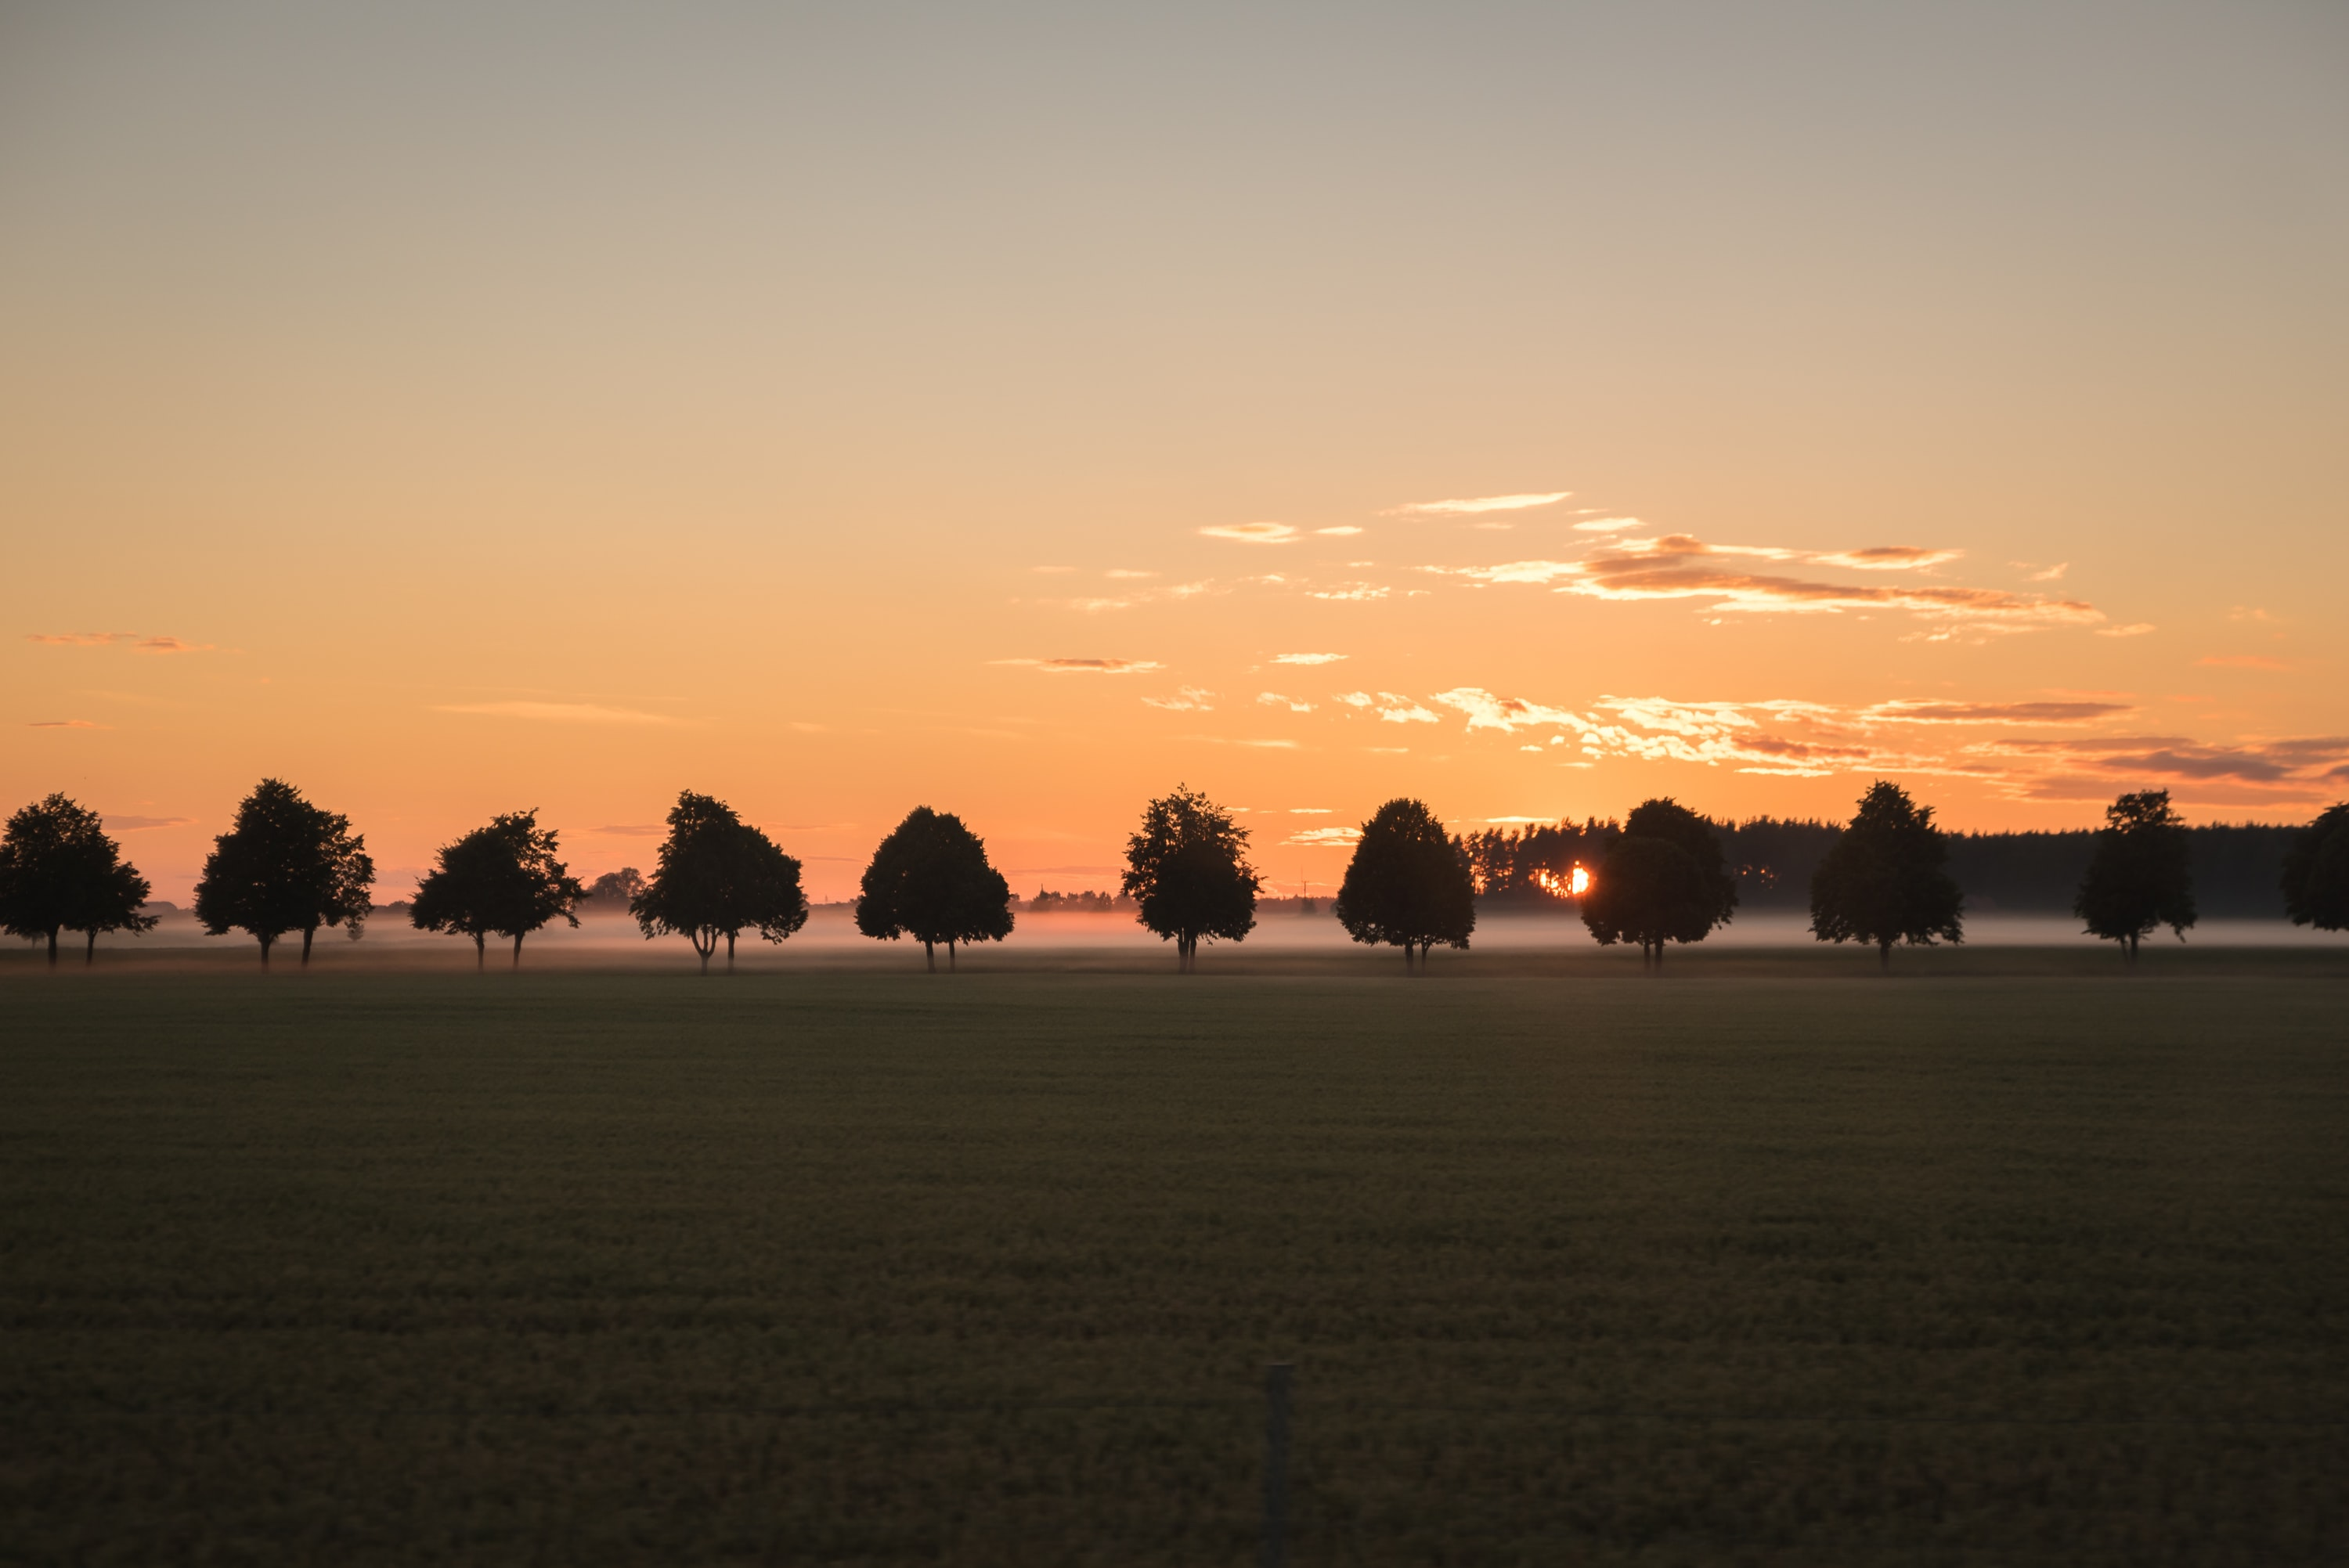 A line of trees in the distance of a grass field, with the sun setting behind